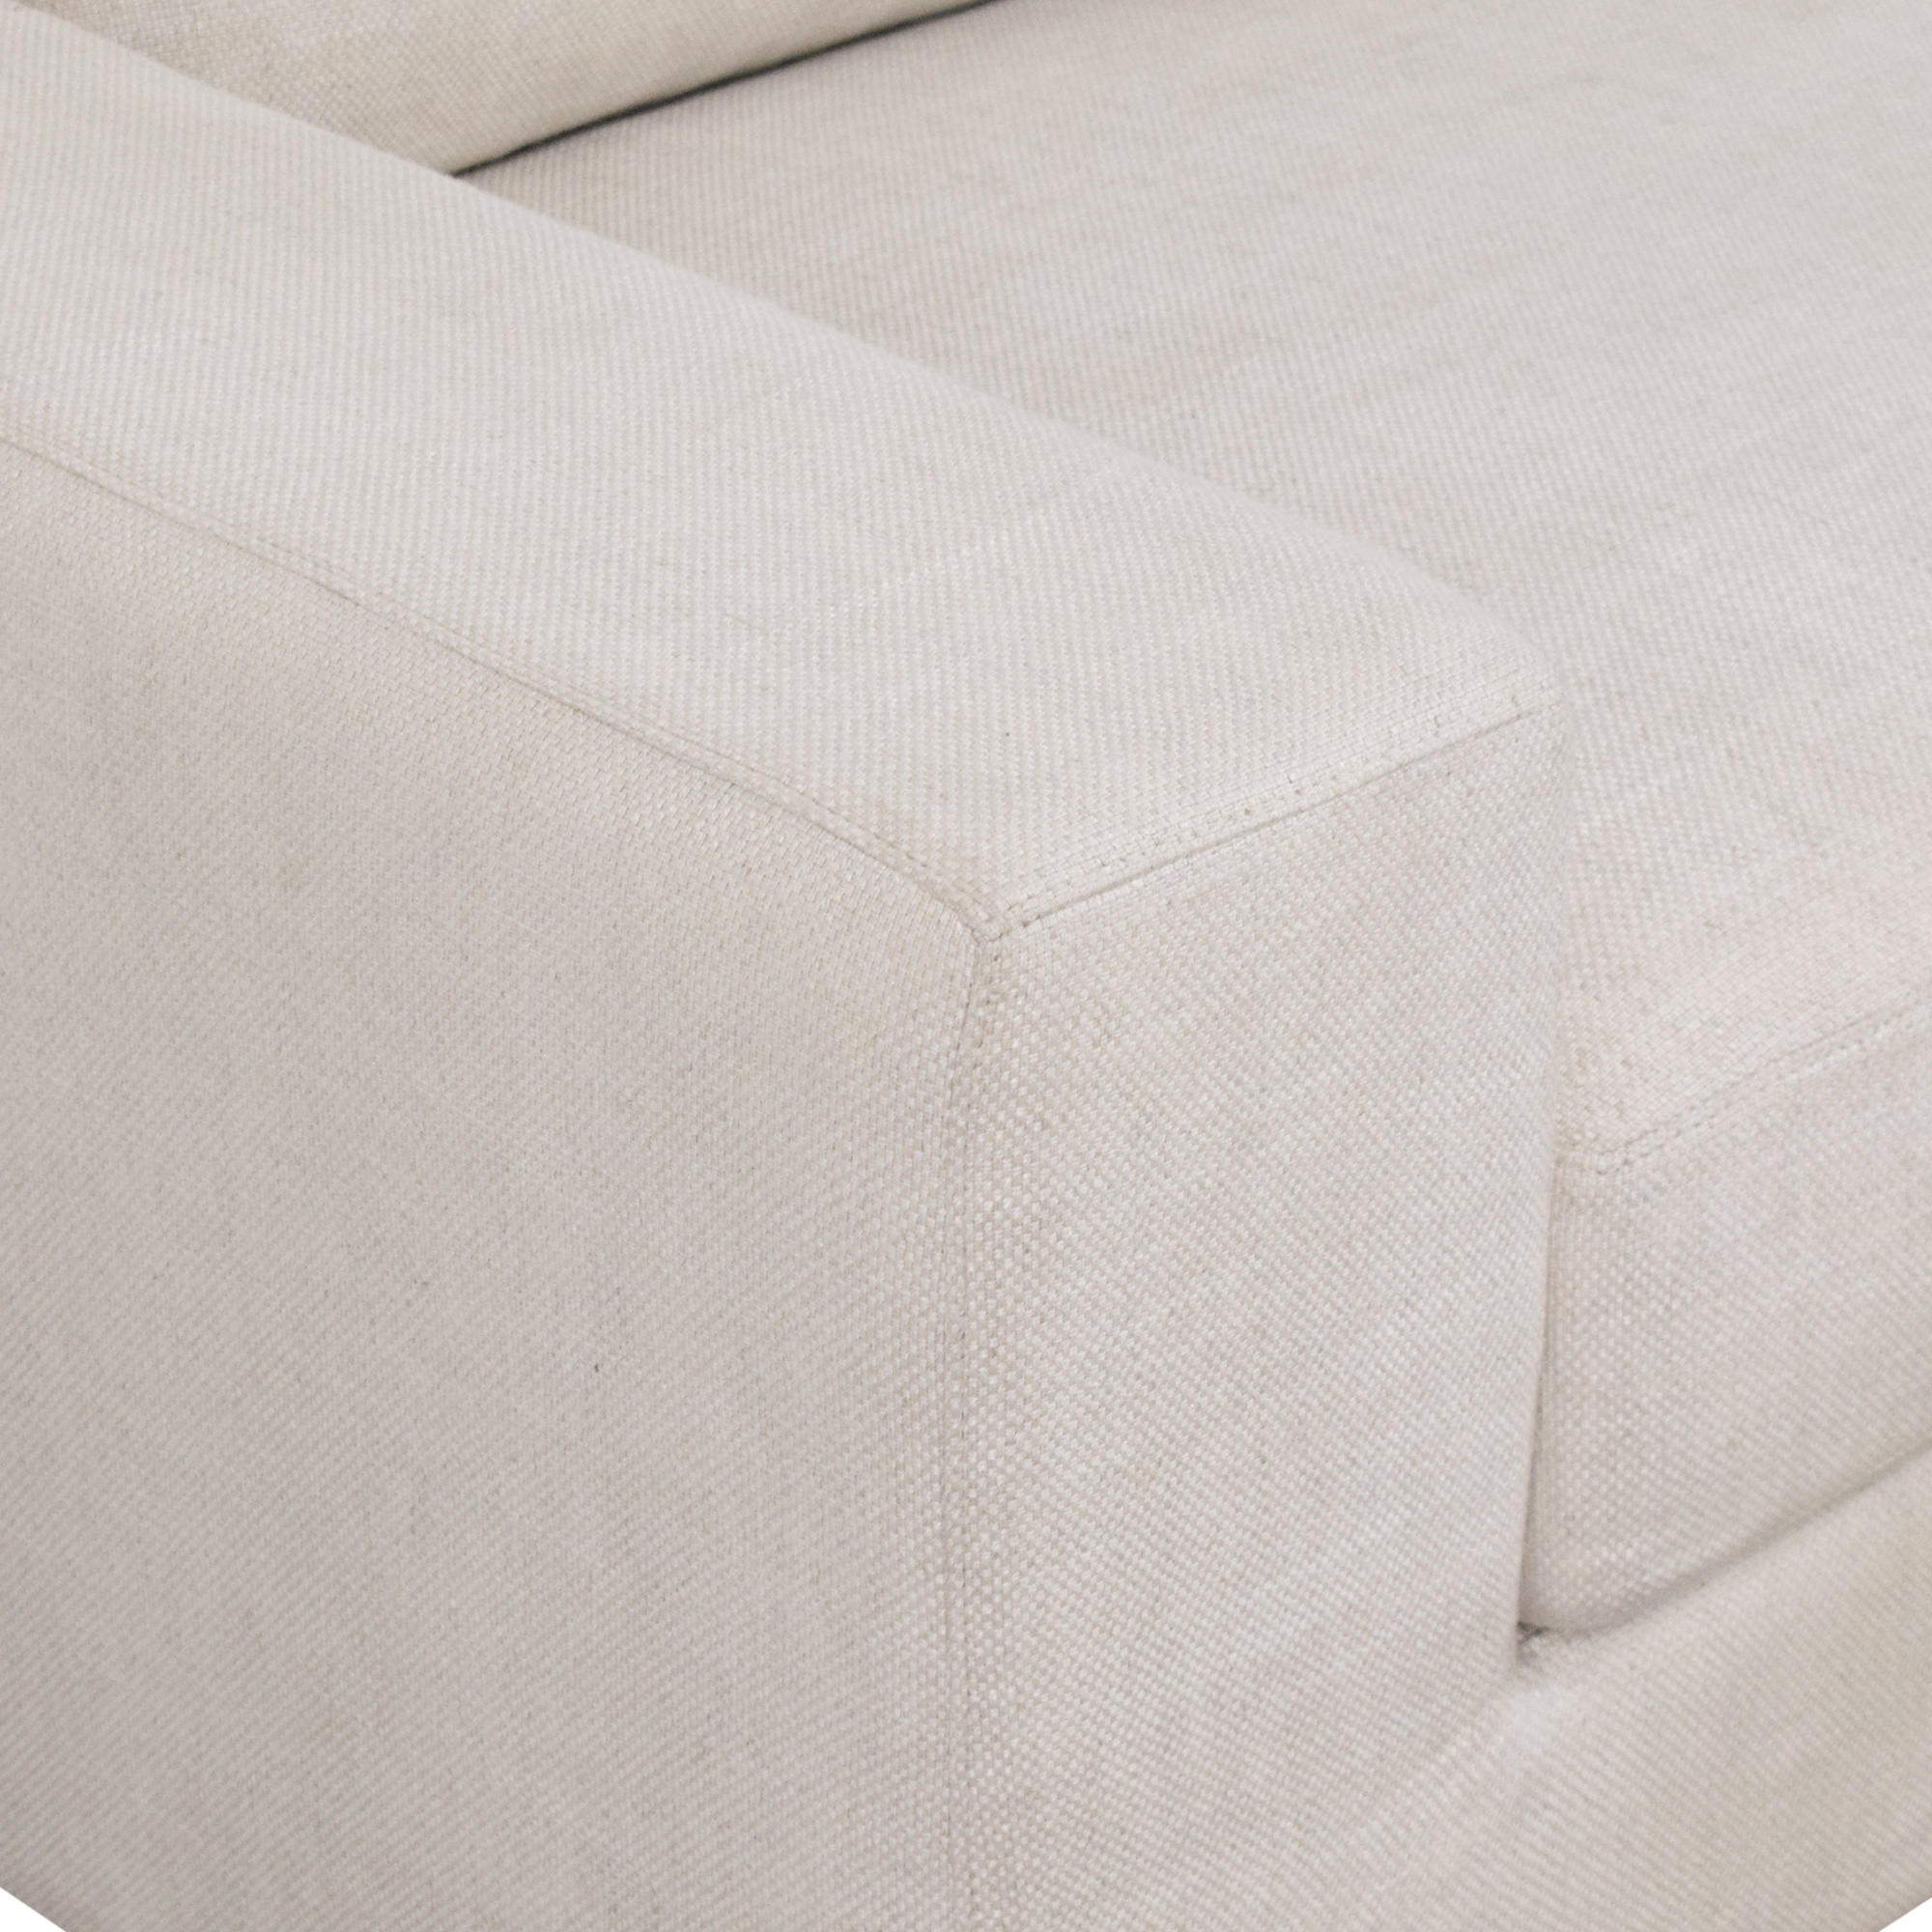 Restoration Hardware Restoration Hardware Modena Track Arm Bench-Seat Sofa discount